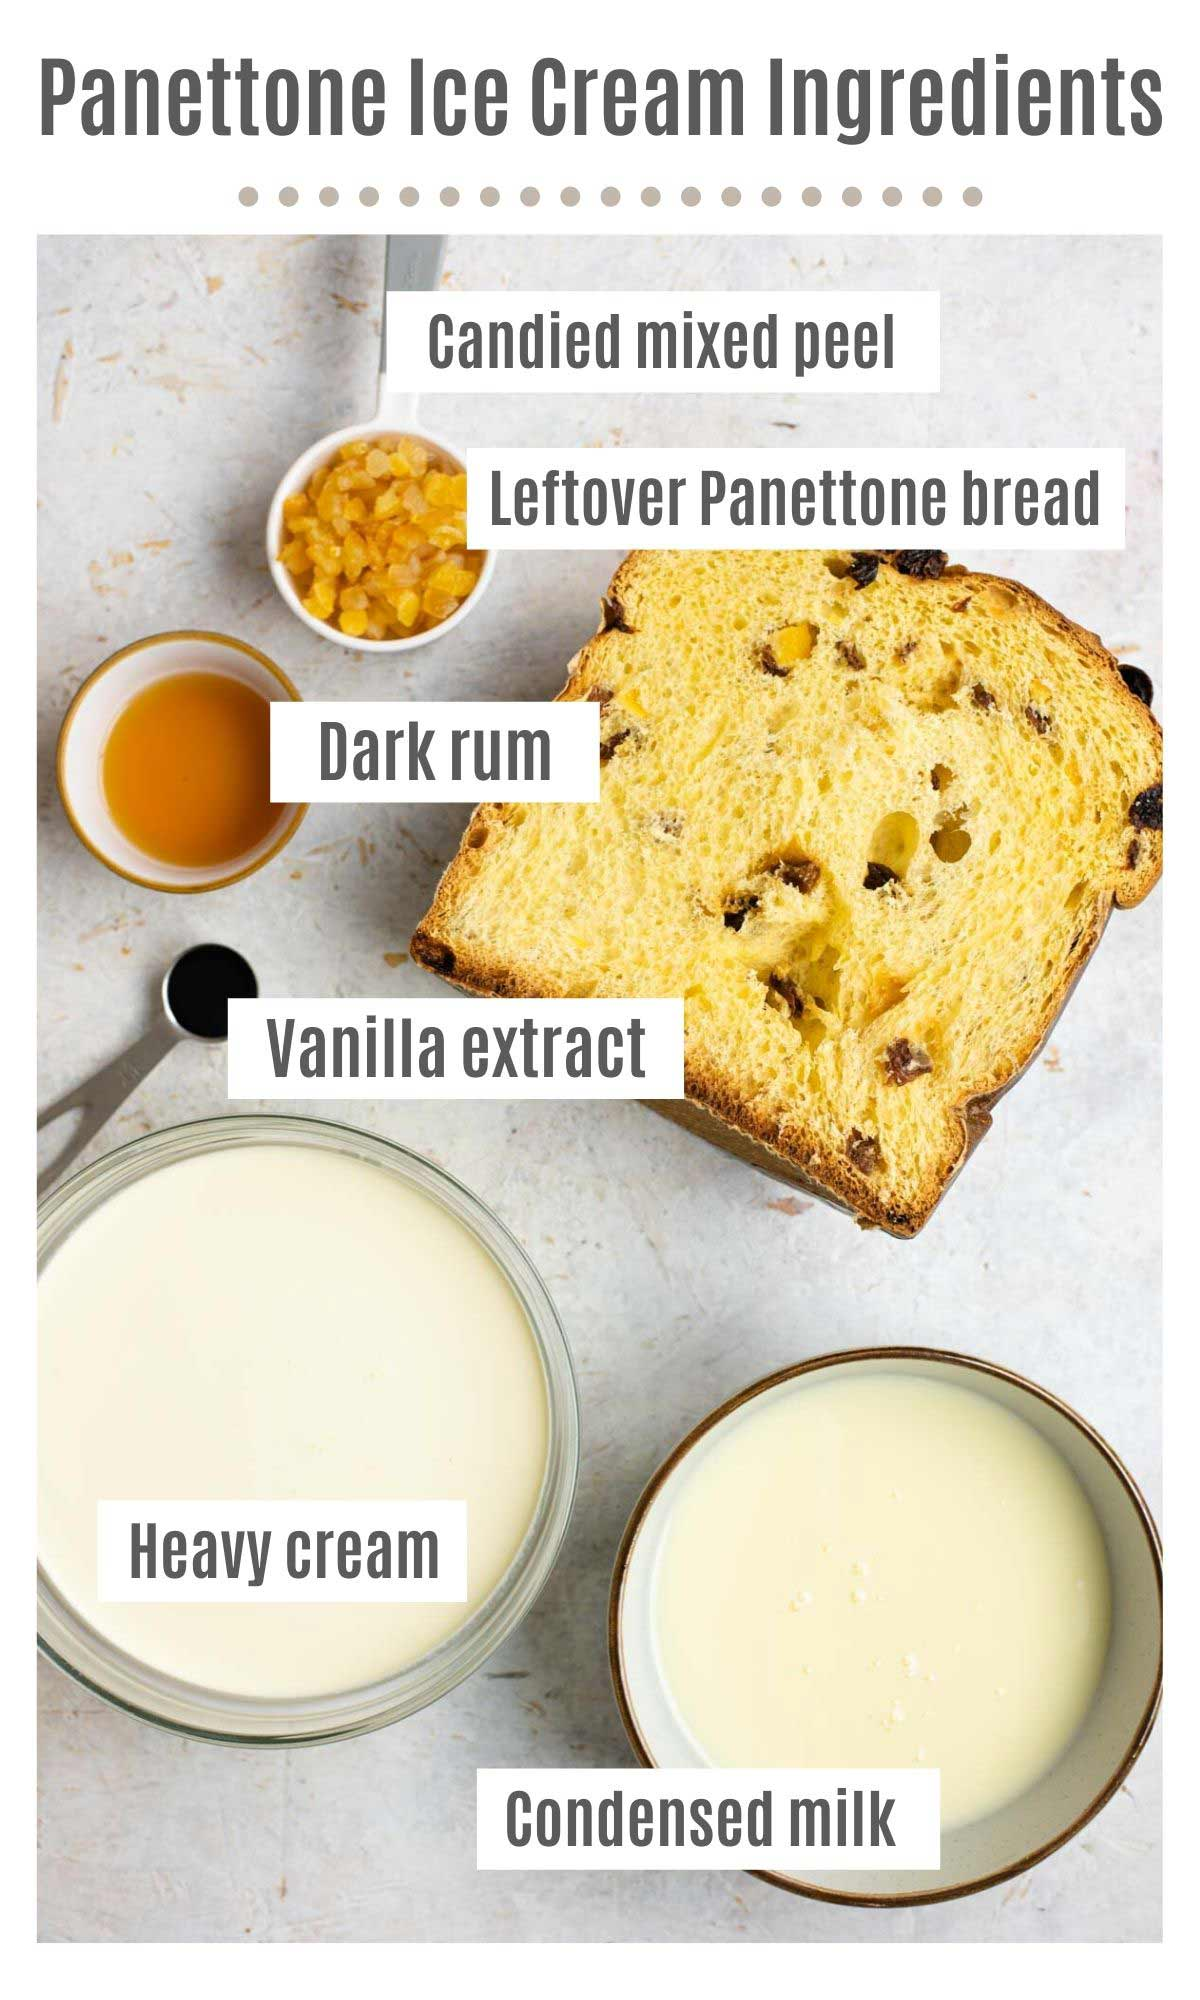 An overhead shot of all the ingredients you need to make Panettone ice cream